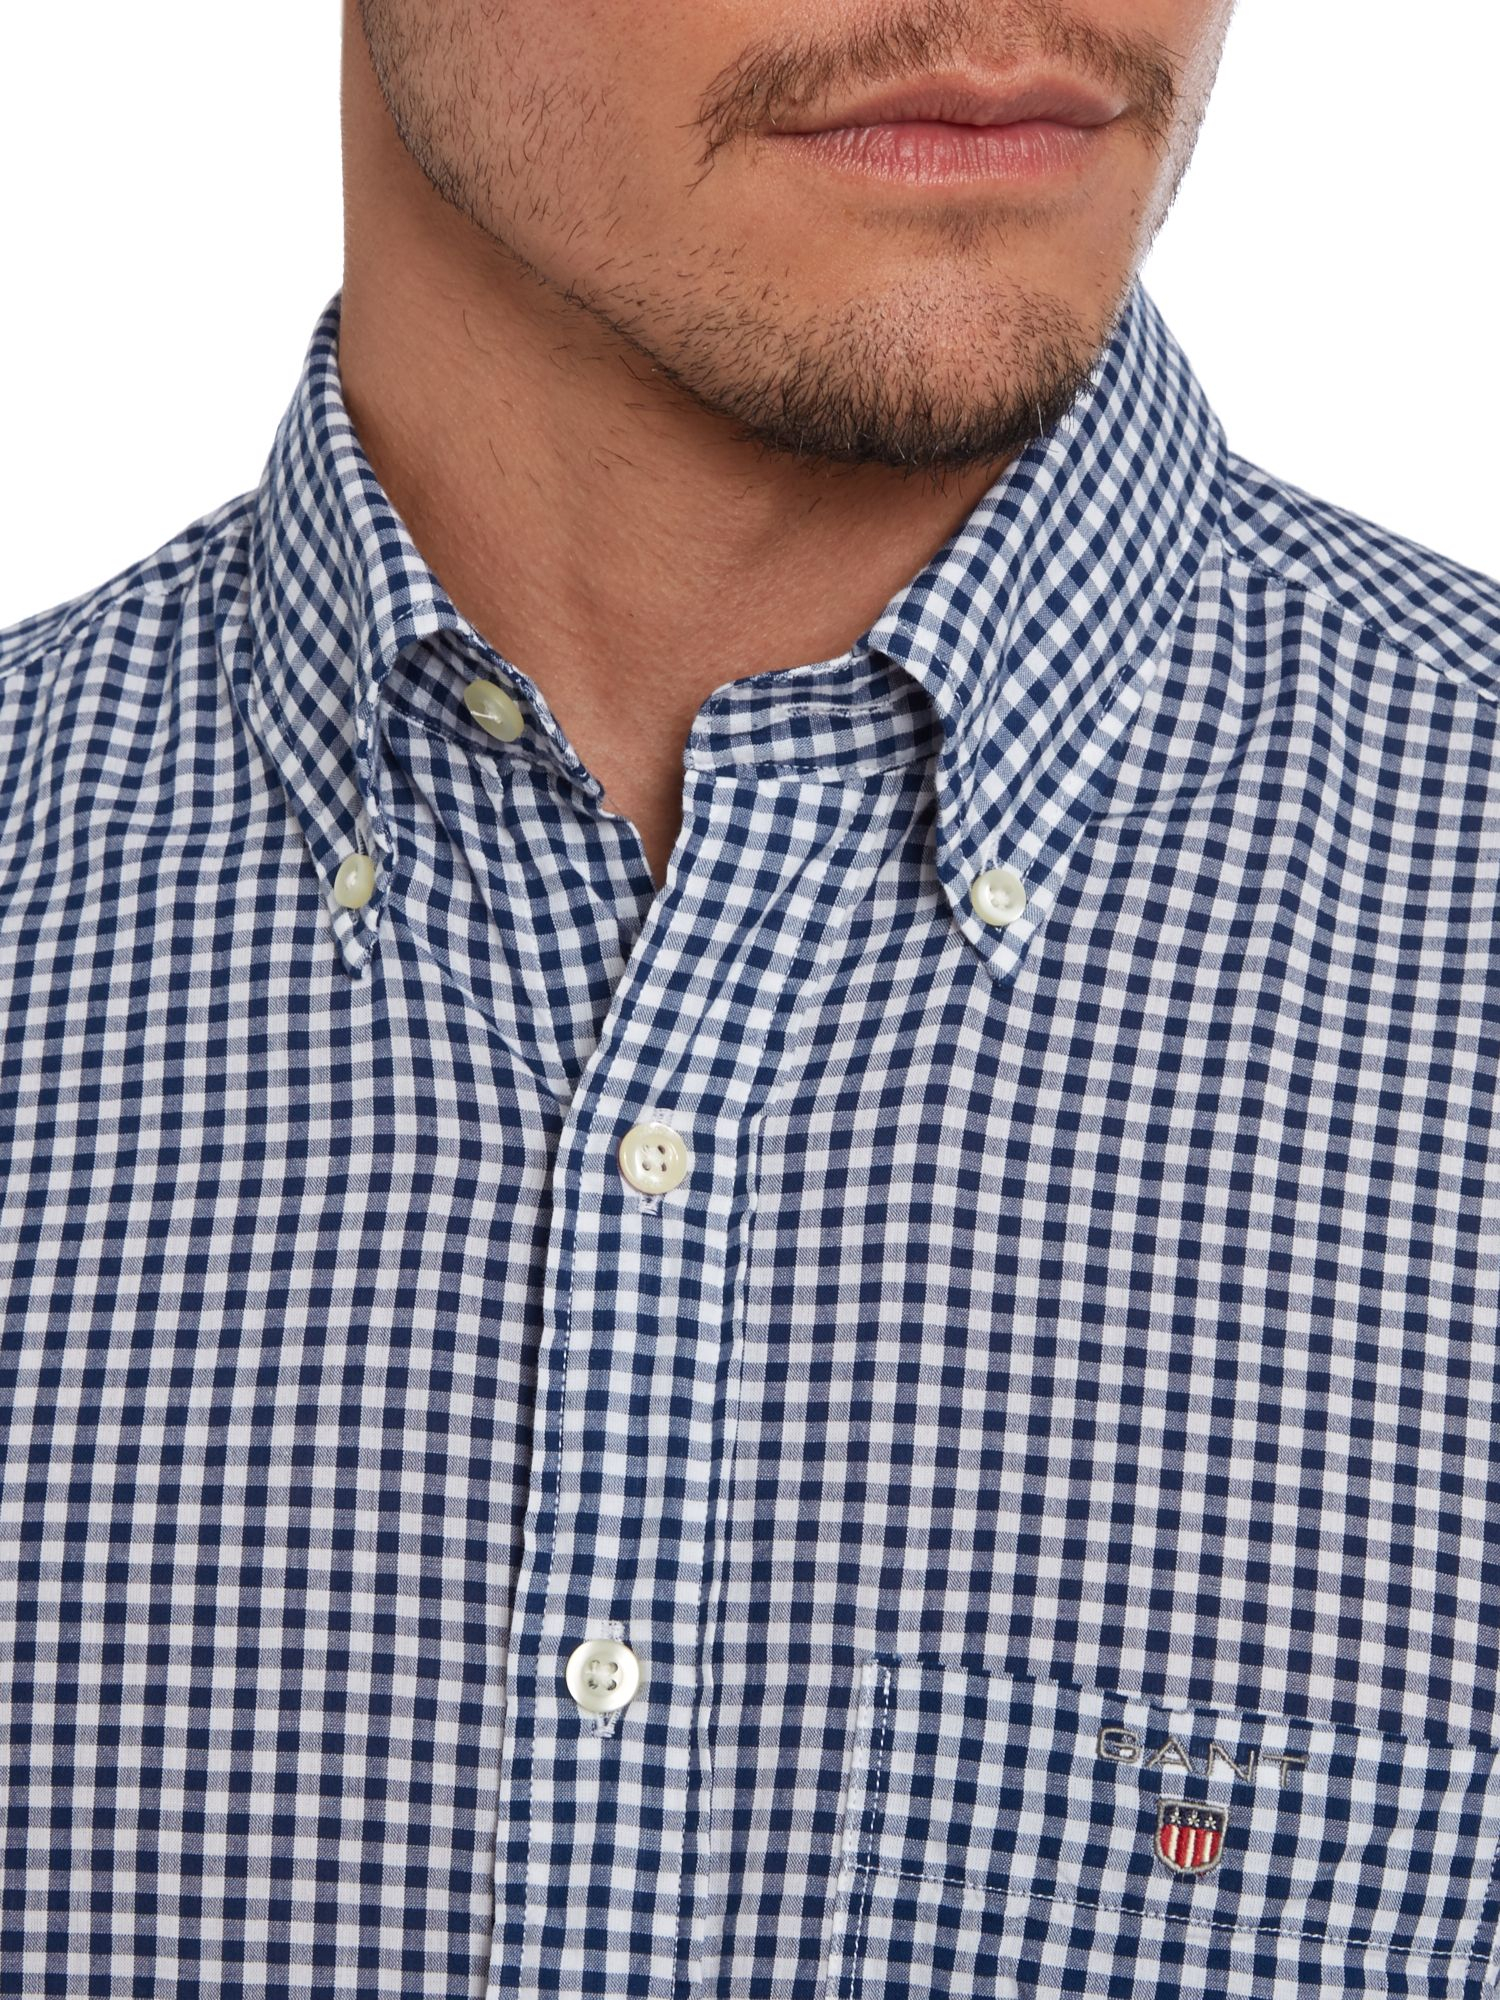 Lyst gant brightwaters gingham shirt in blue for men for Mens blue gingham shirt